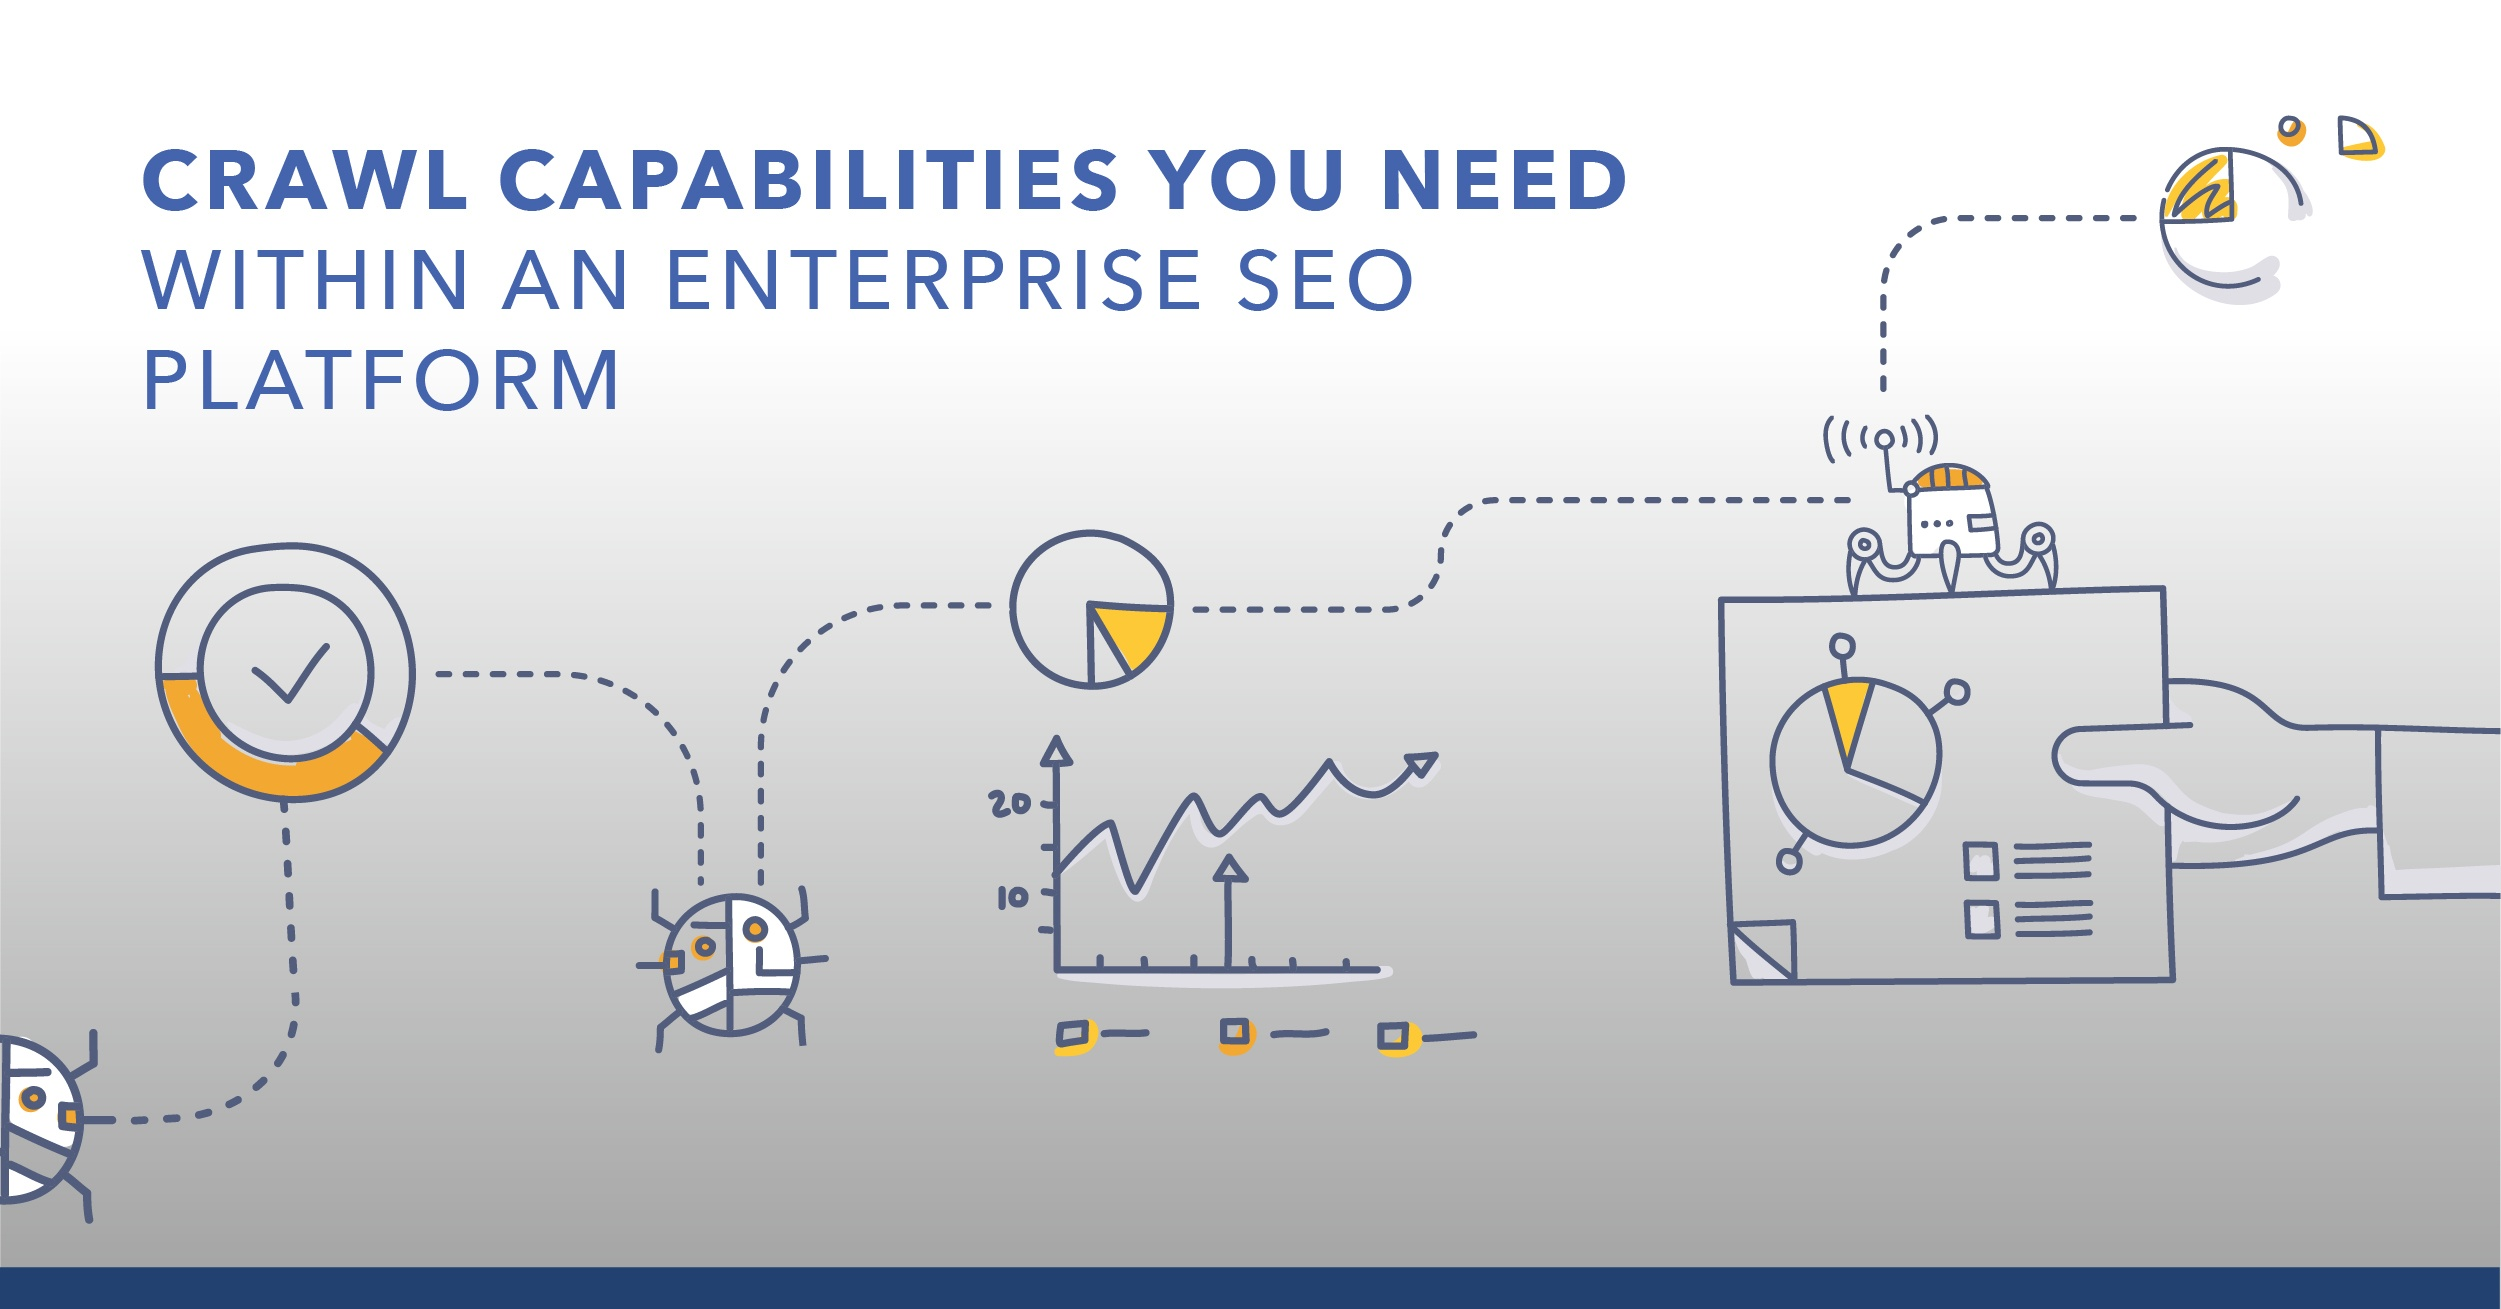 Crawl Capabilities You Need Within an Enterprise SEO Platform